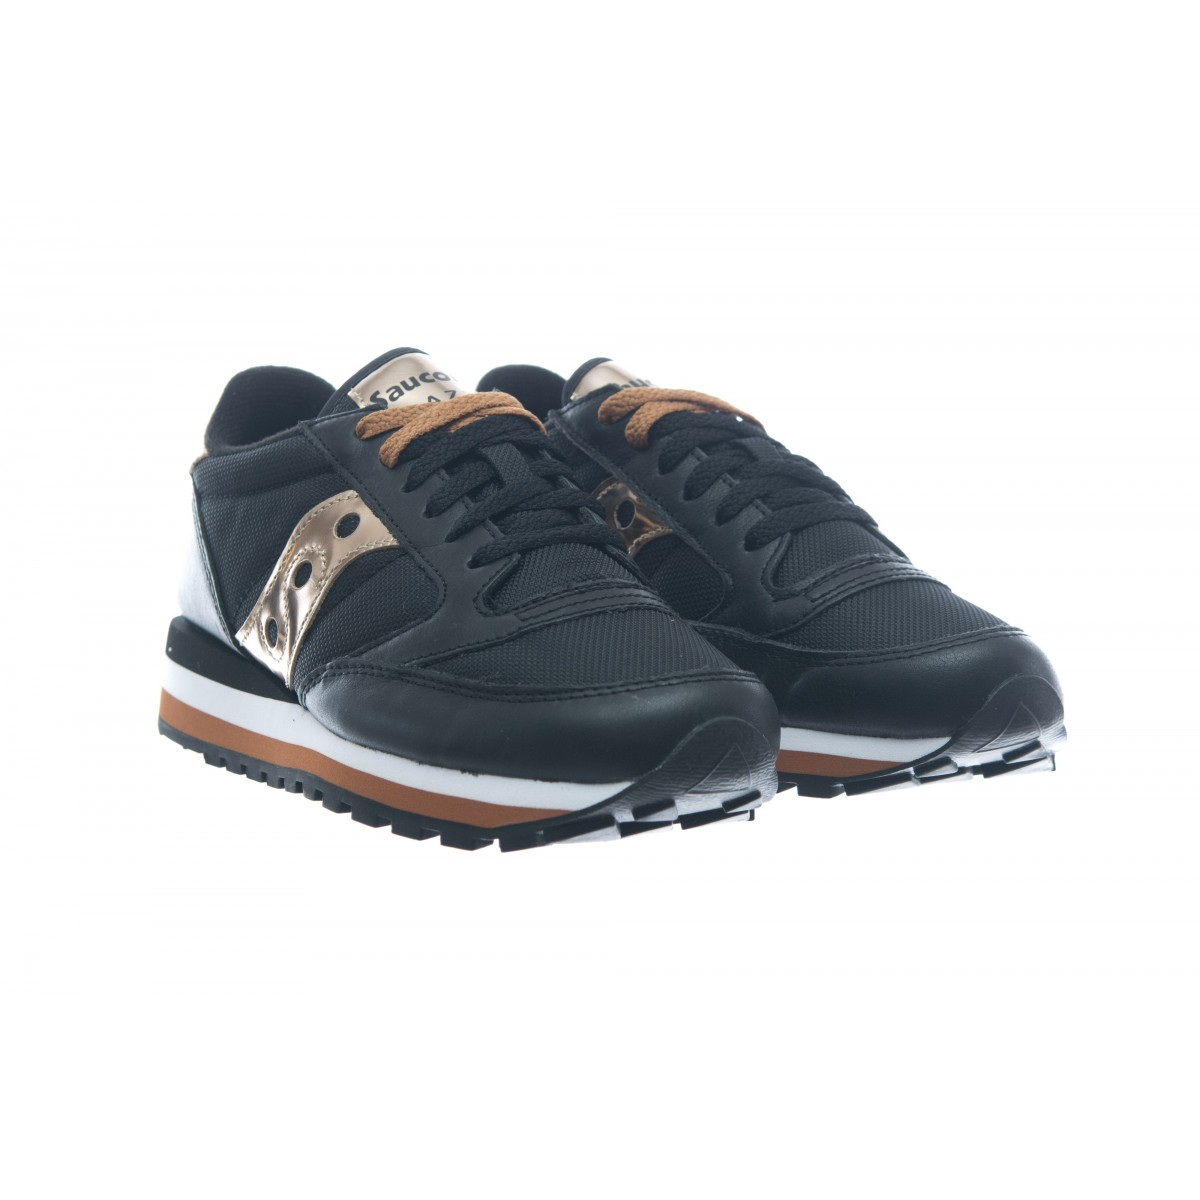 Scarpa - 60497 smu limited black gold